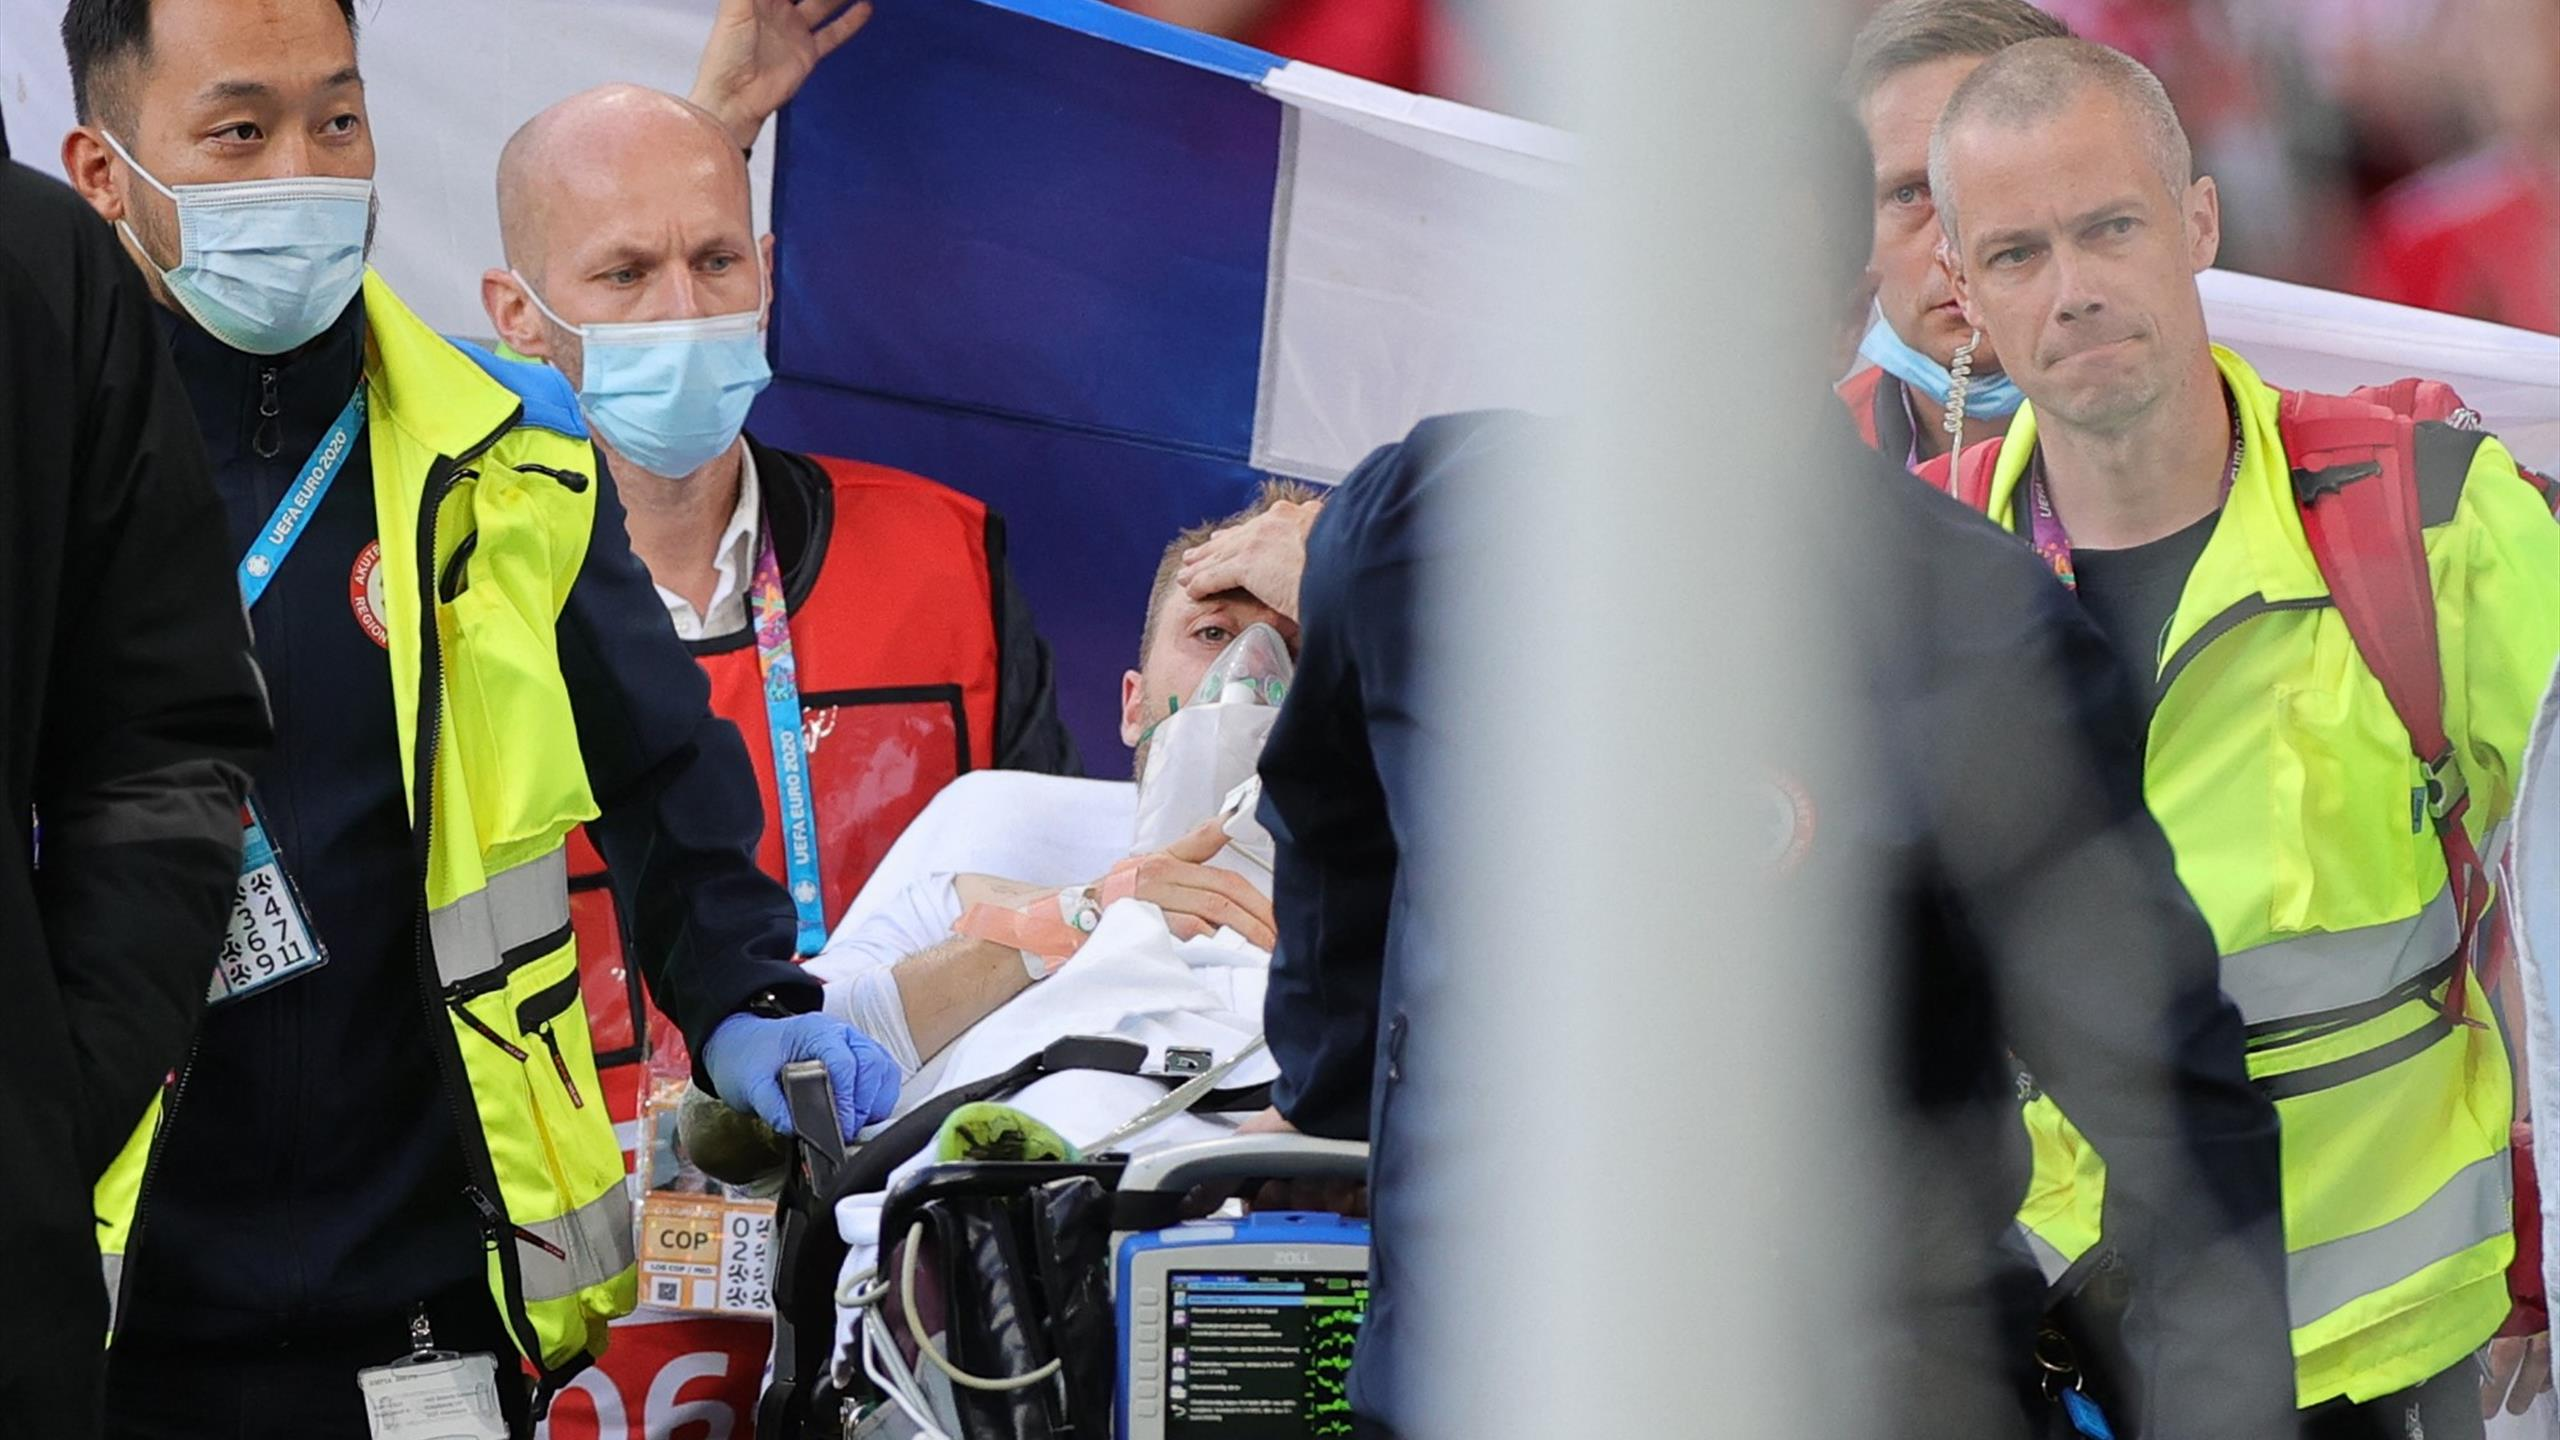 Christian Eriksen: Danish midfielder stable, transferred to hospital after collapsing on pitch at Euro 2020